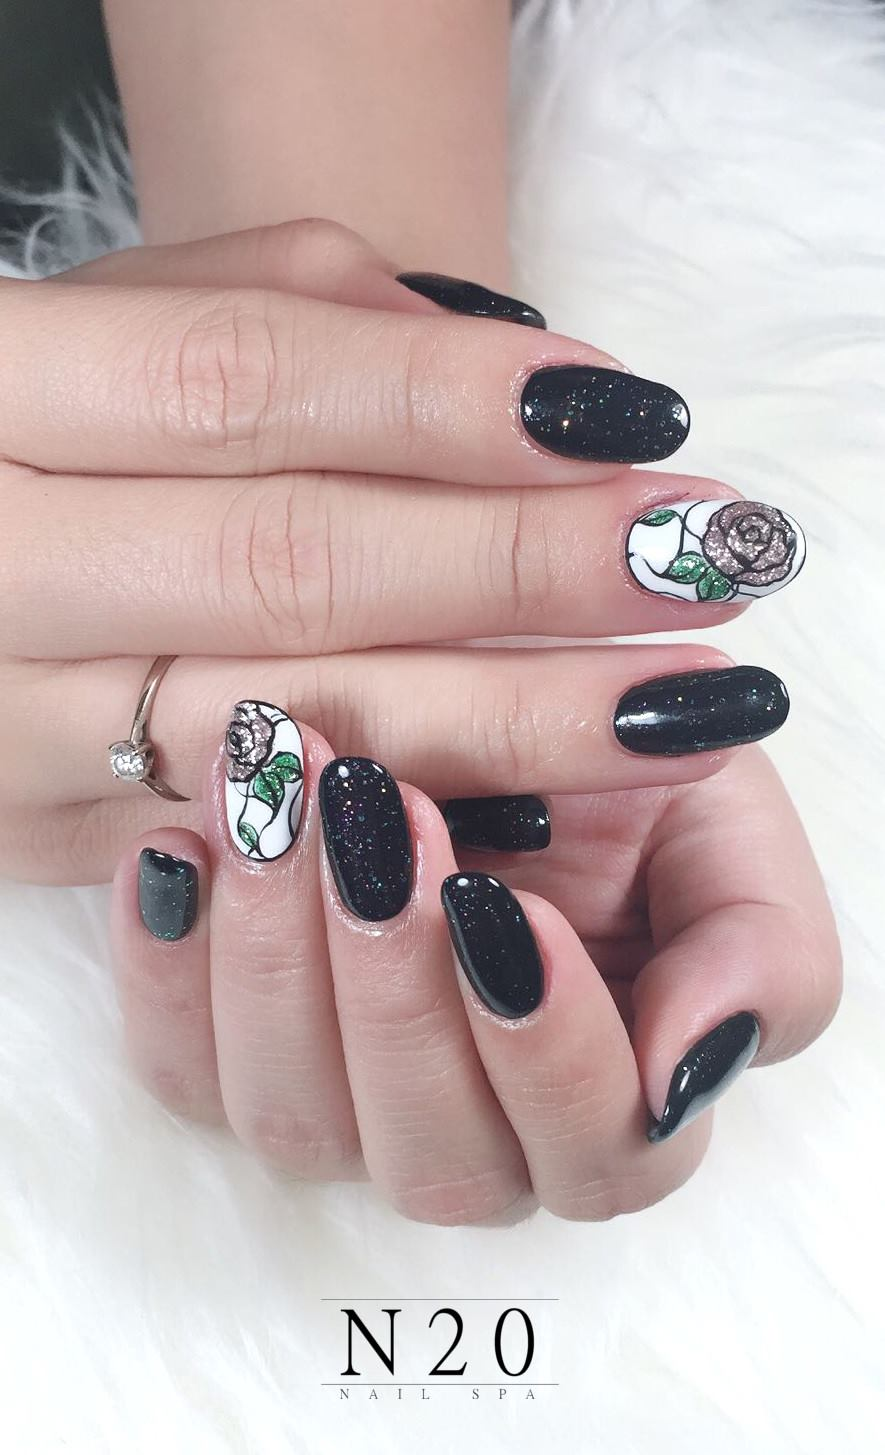 Glitter on bold black and flora on white manicure nail art - N20 ...